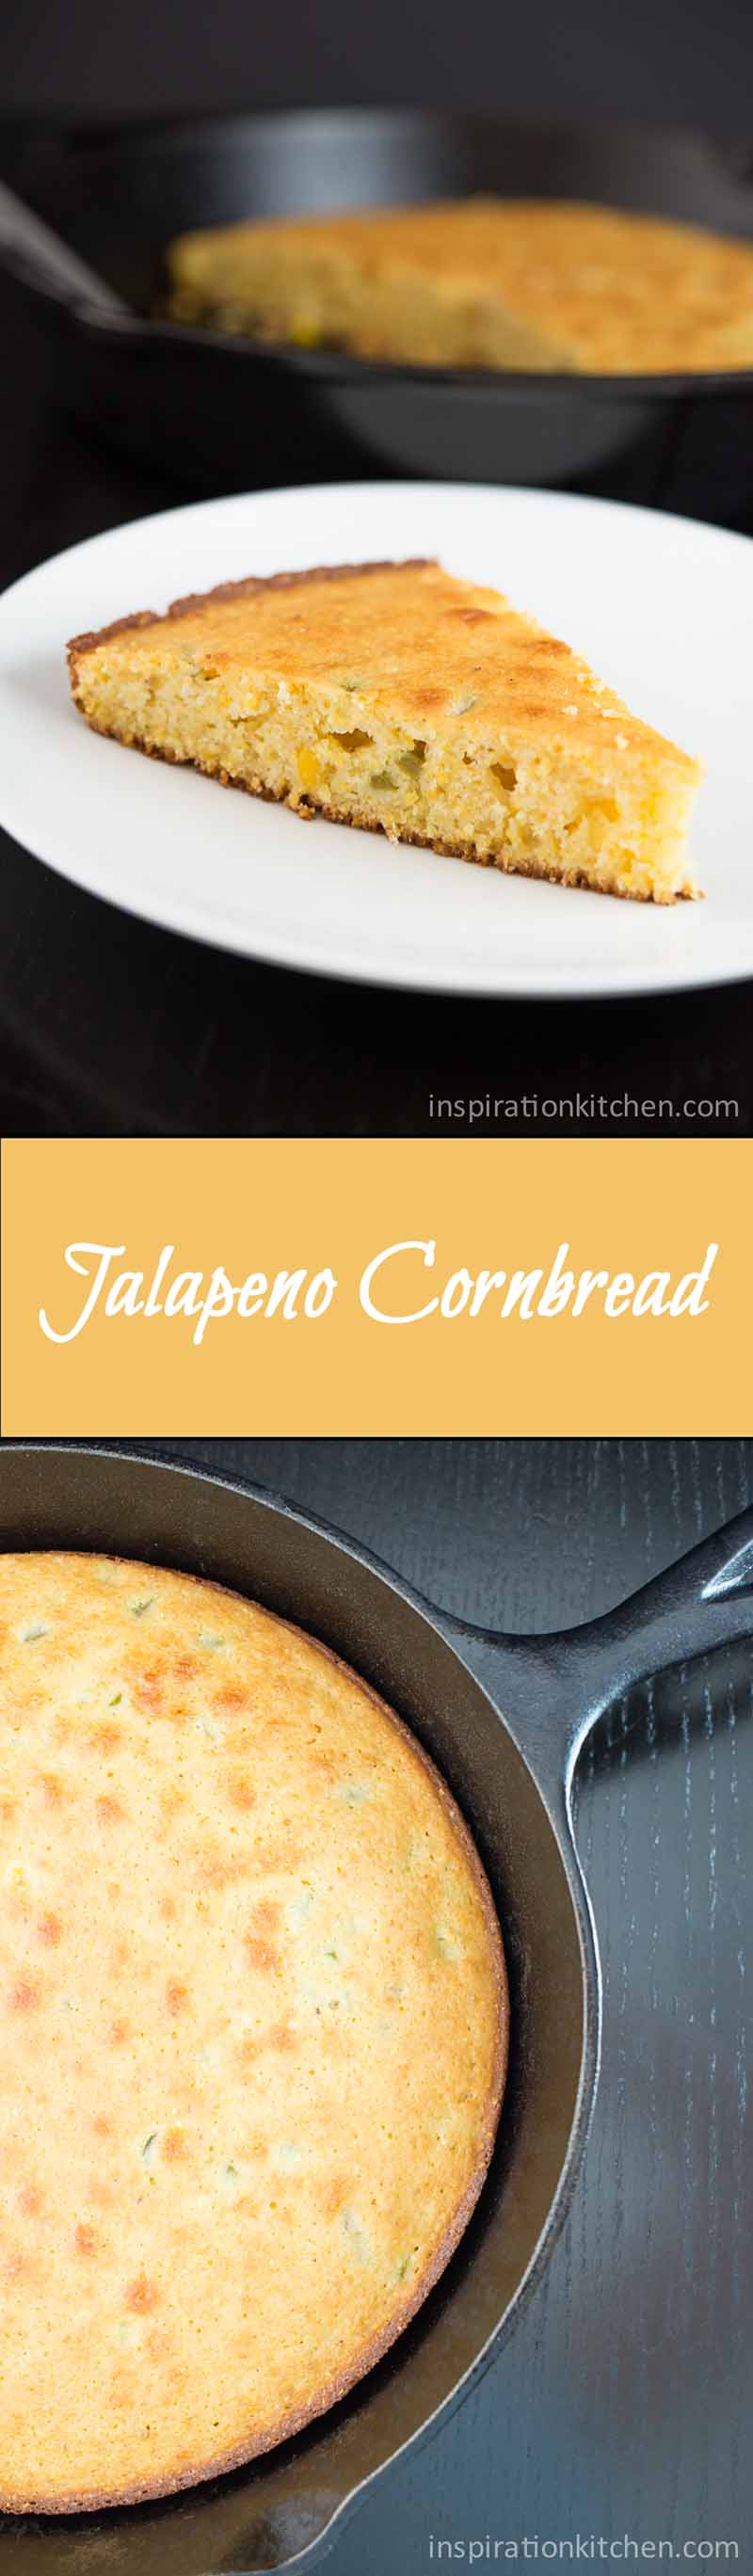 Jalapeno Cornbread Collage | Inspiration Kitchen